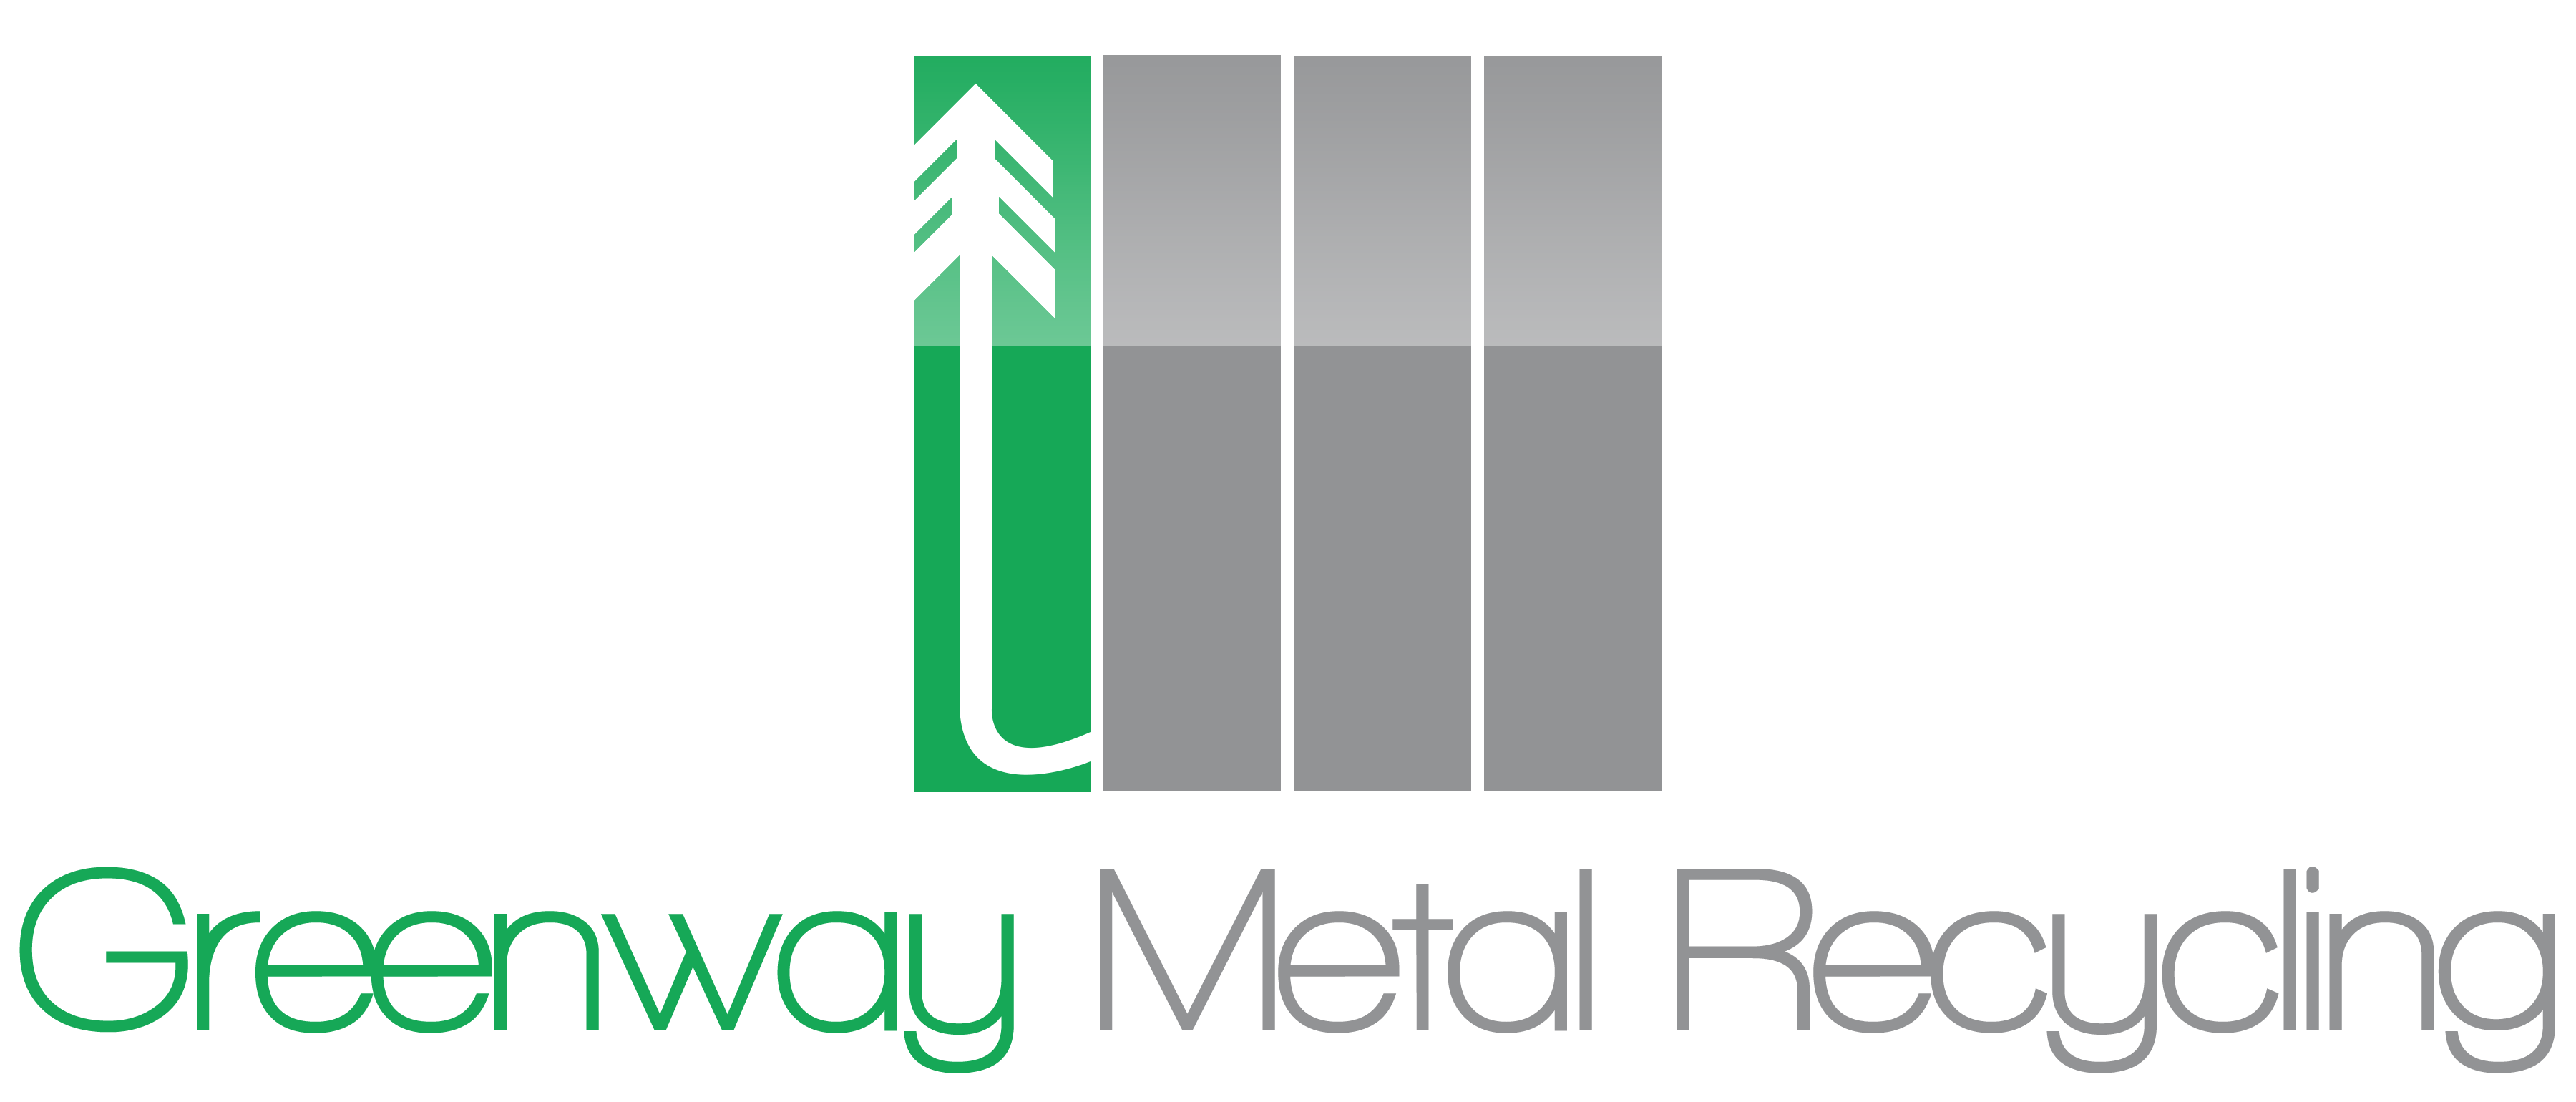 Greenway Metal Recycling, Inc. is Providing Net 5 Days Payment for All Industrial Scrap Metal Customers